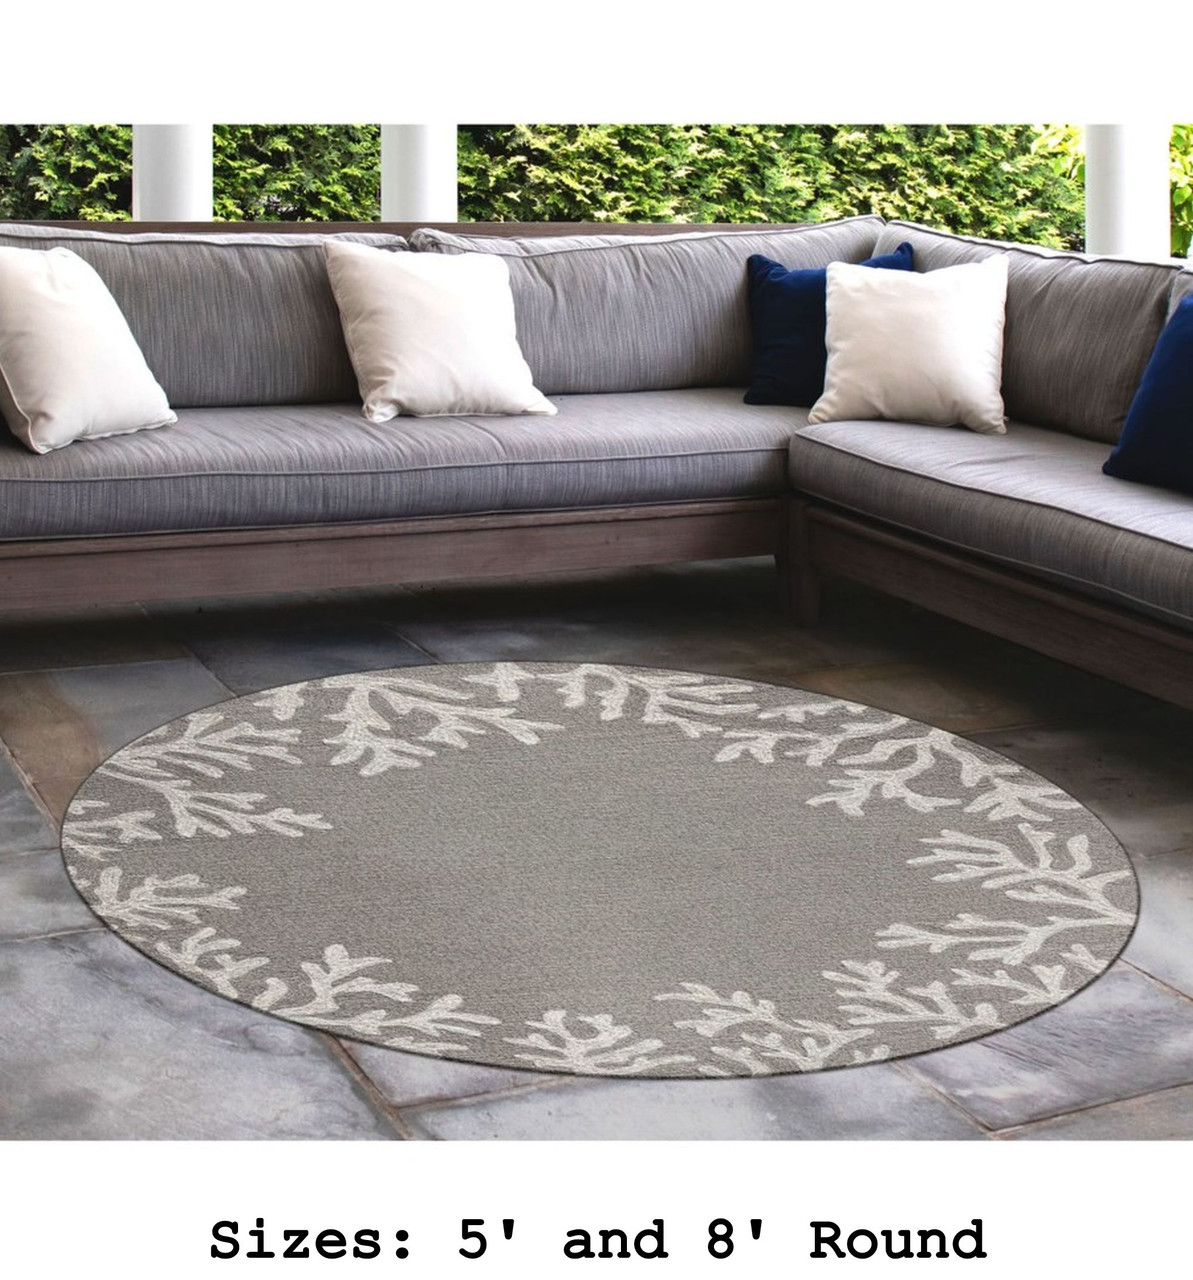 Capri Coral Border Indoor/Outdoor Rug -  Silver - Round Lifestyle